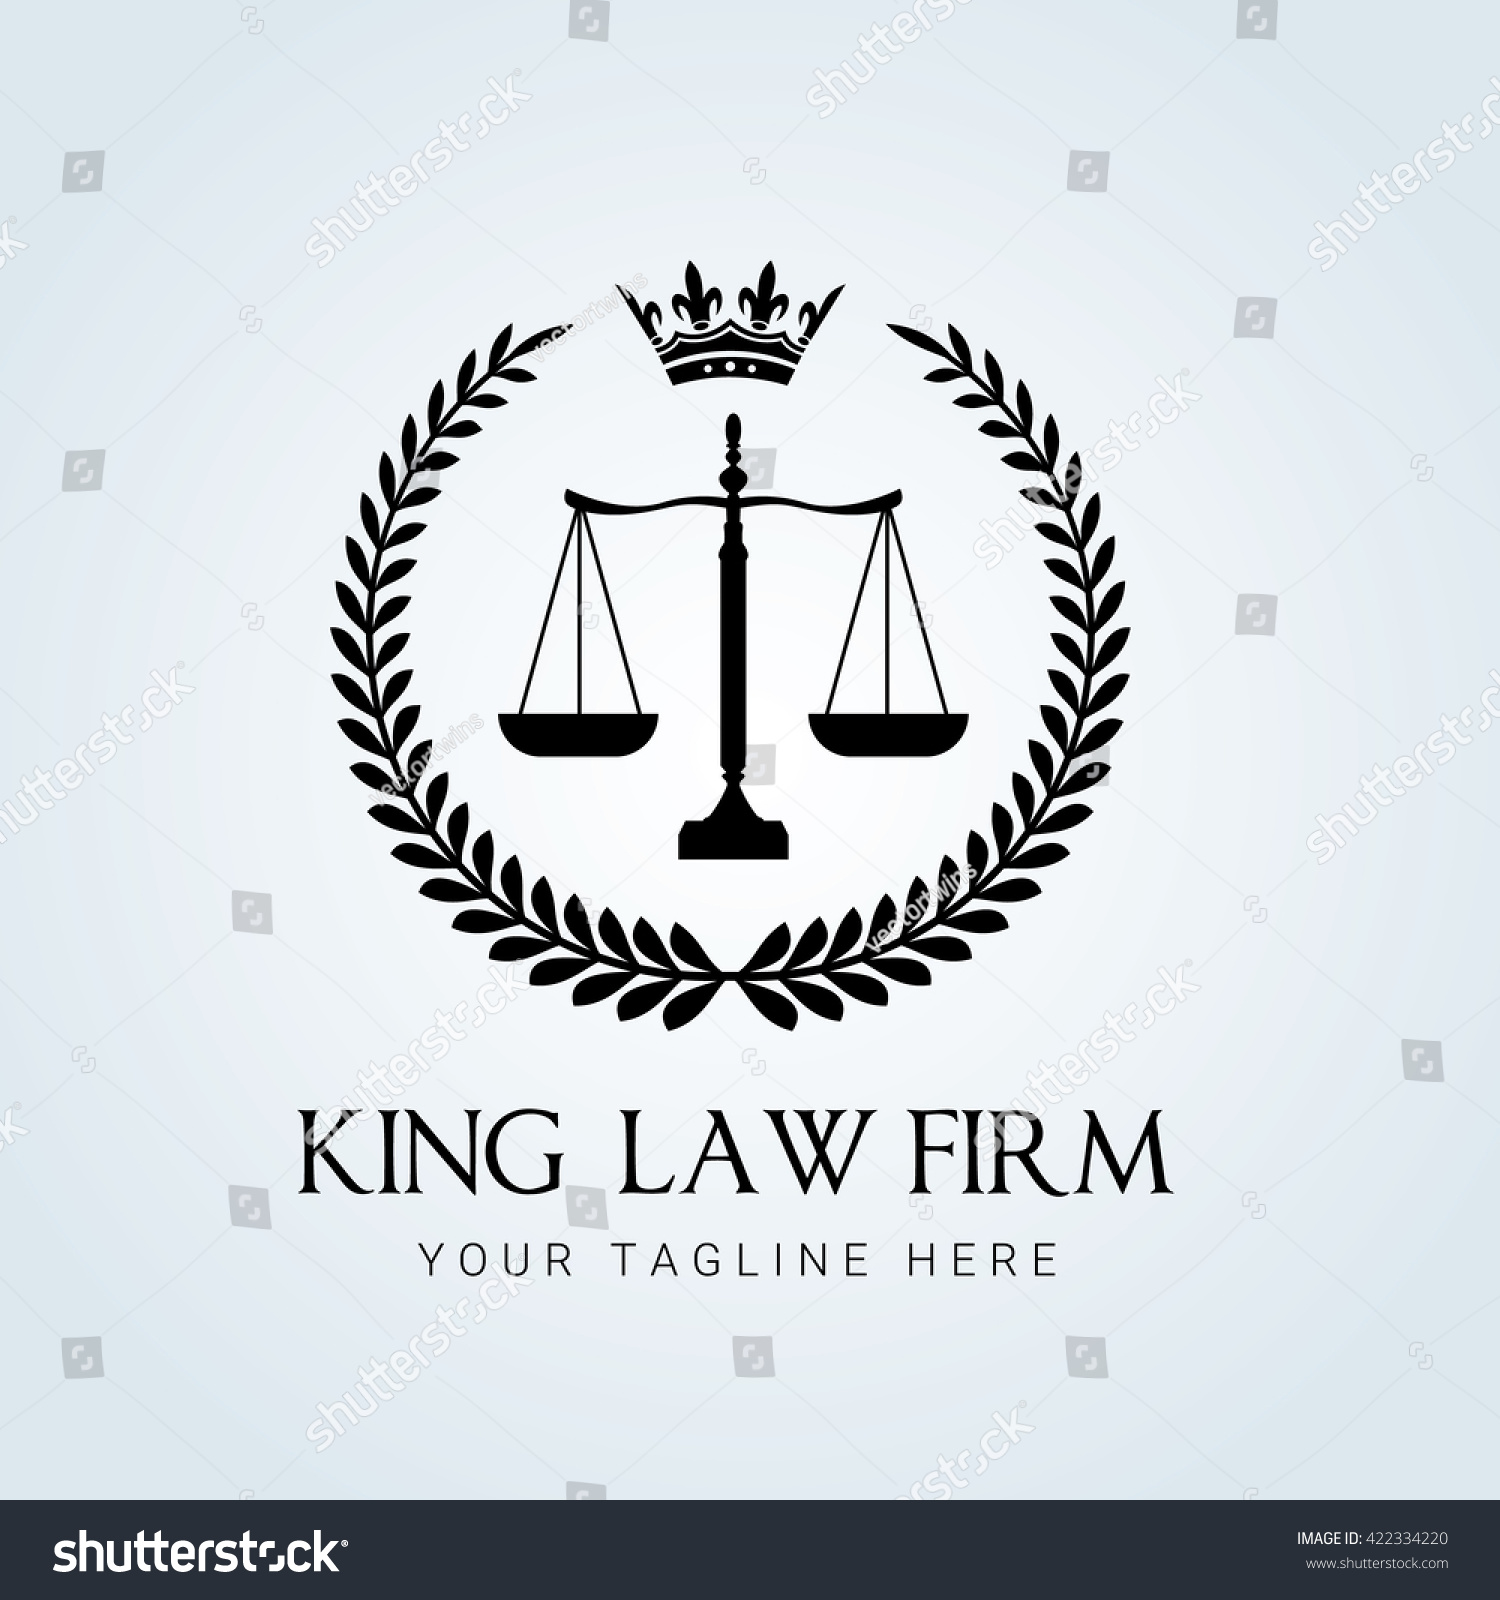 Law Firm Logo Template Stock Vector (Royalty Free) 422334220 ...